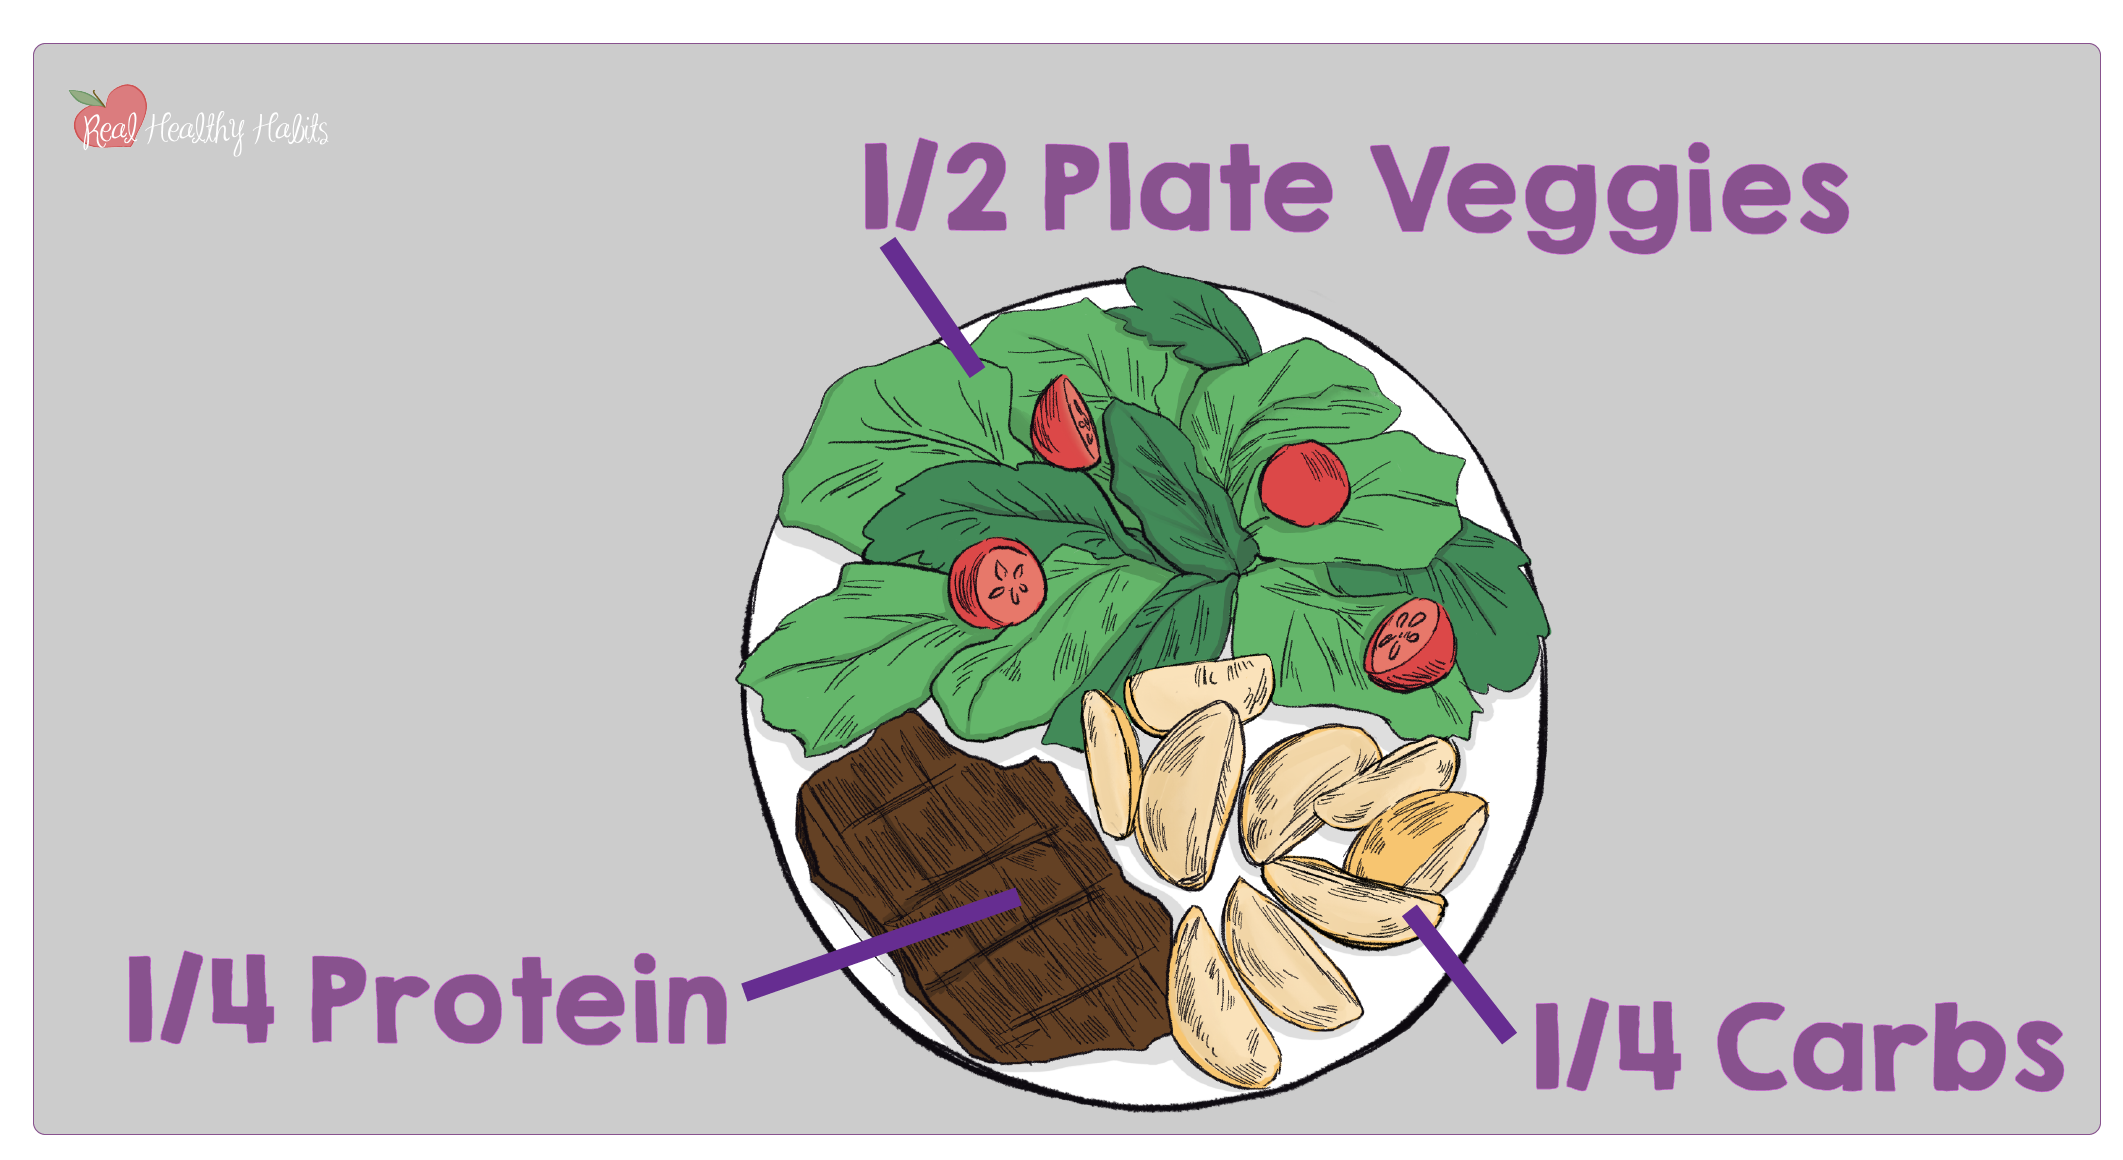 The Real Healthy Habit Plate Method is a simple way to eat healthy. Check out the System Showdown between calorie counting and the Plate Method and see which is the FRESHEST. | How to Tell if Your Weight Loss System is the FRESHEST | www.realhealthyhabits.com